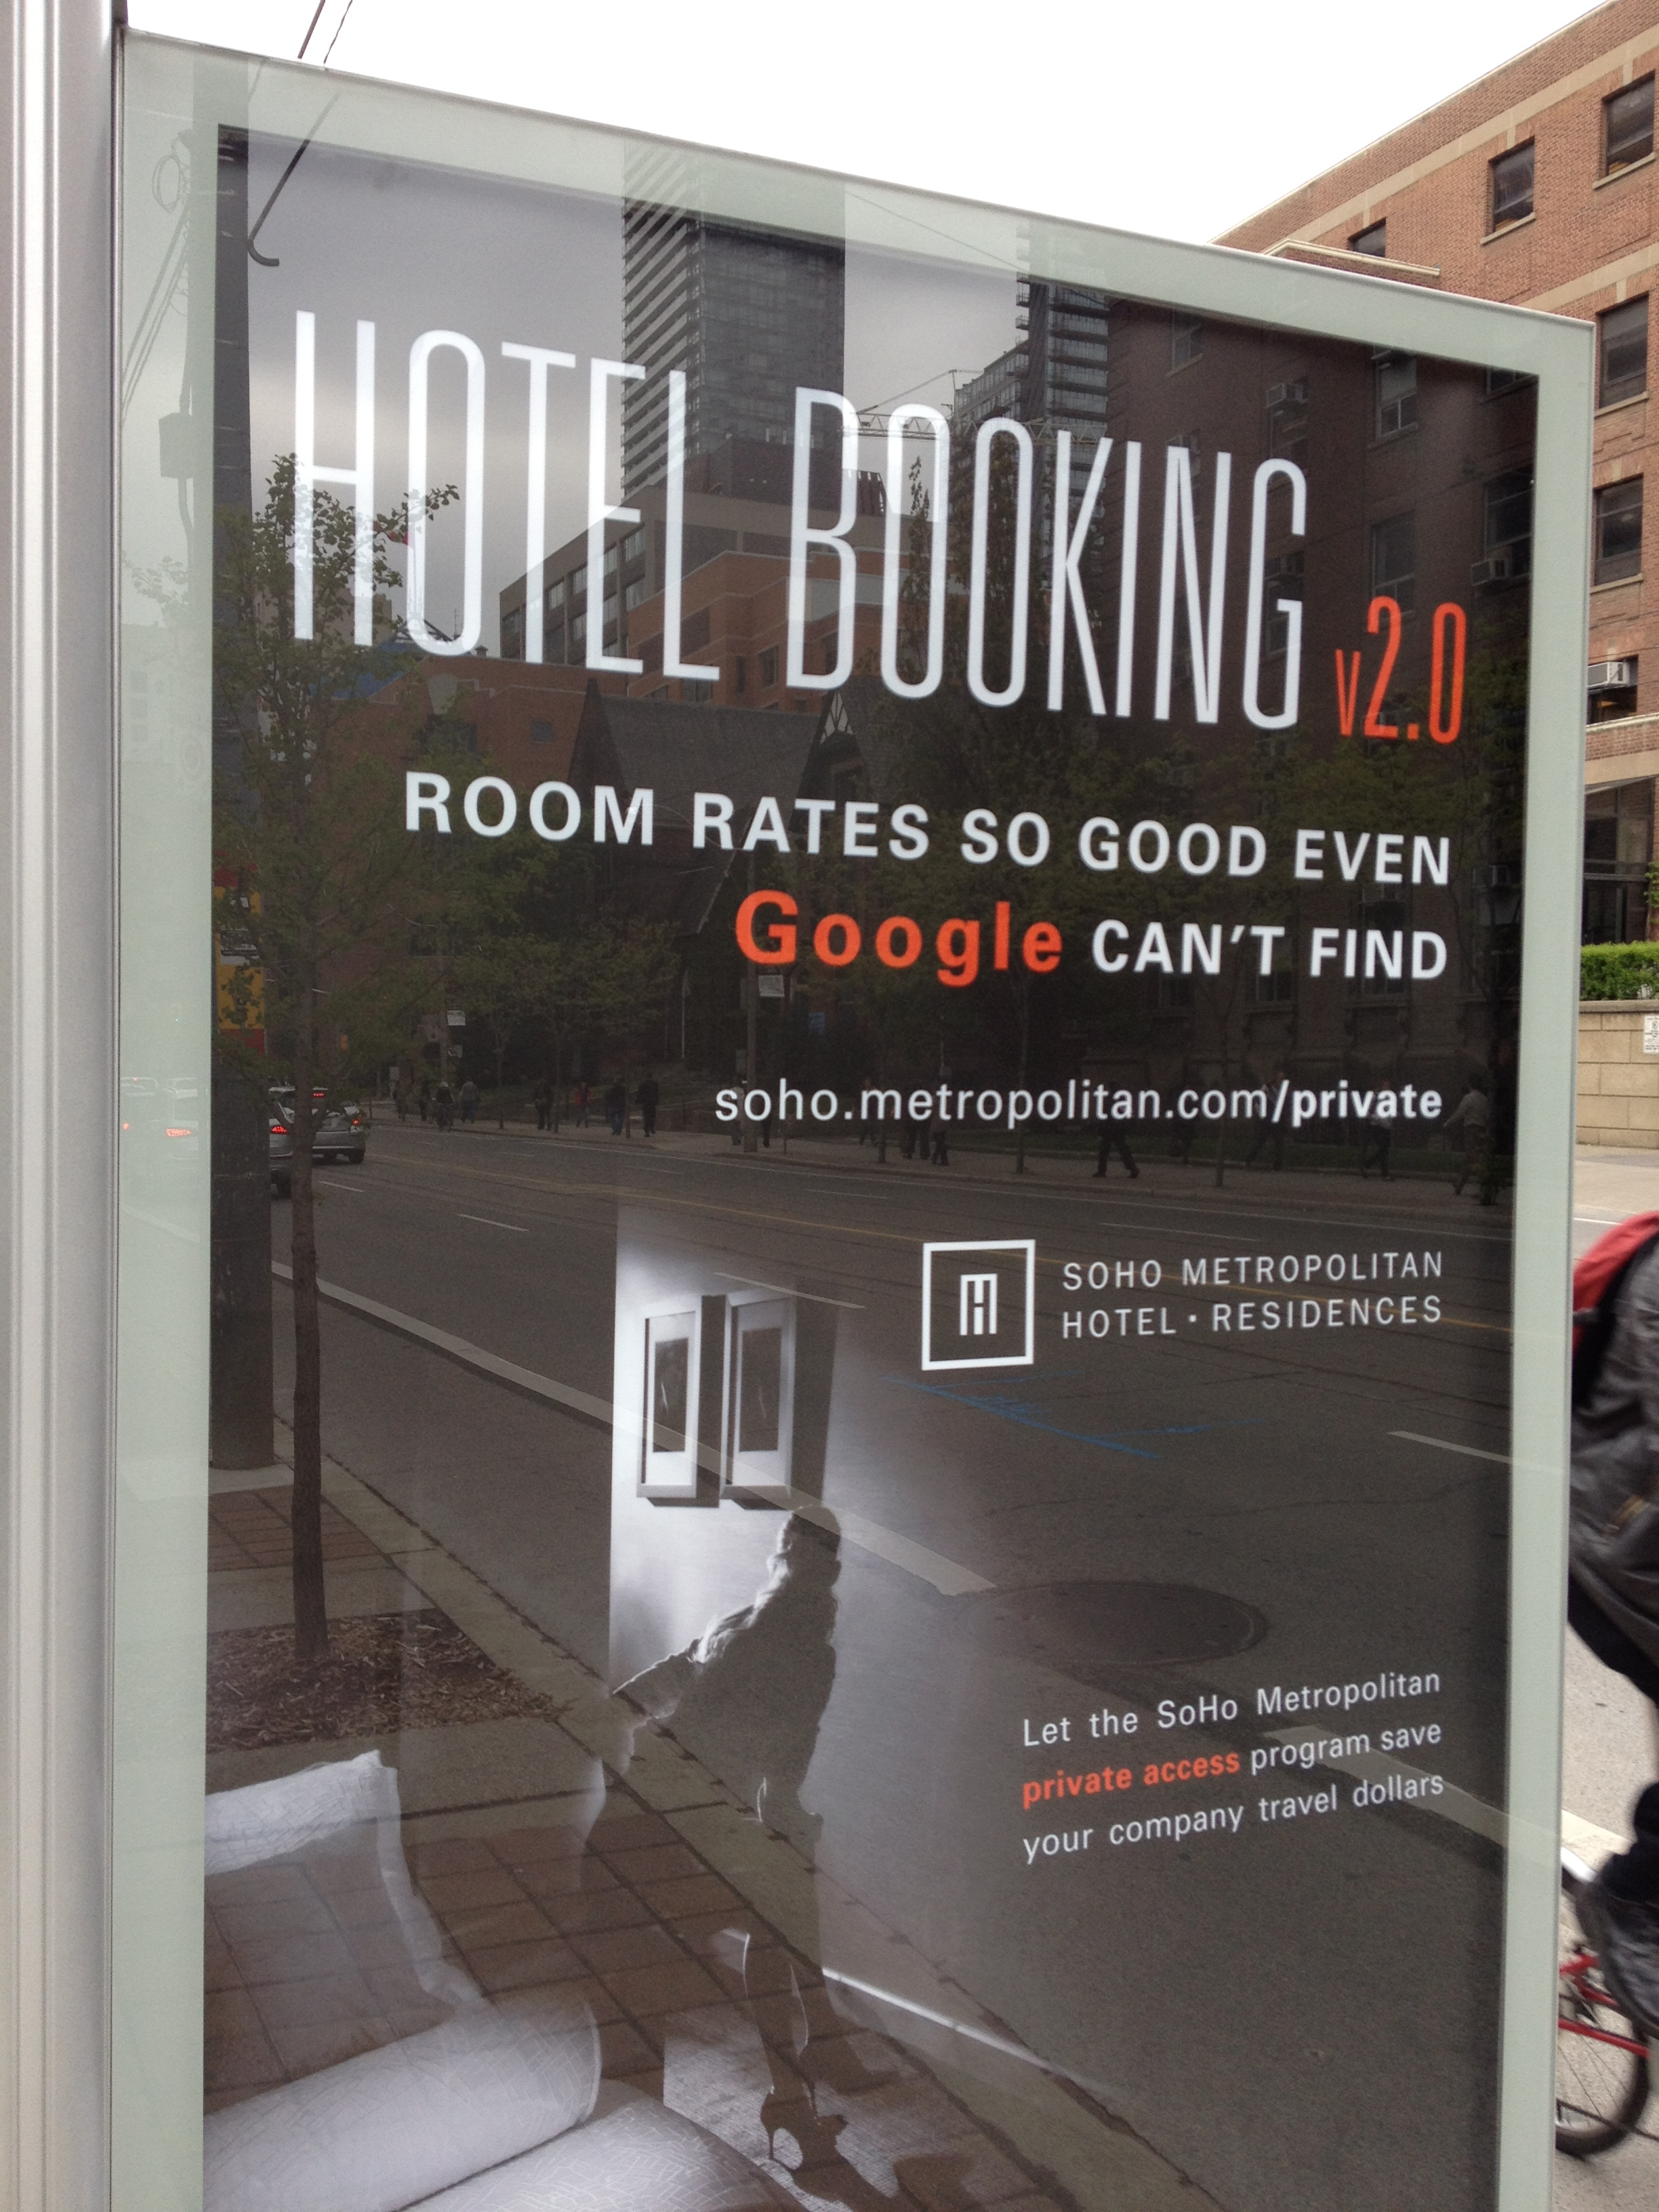 Hotel Booking 2.0 Bus Shelter Ad